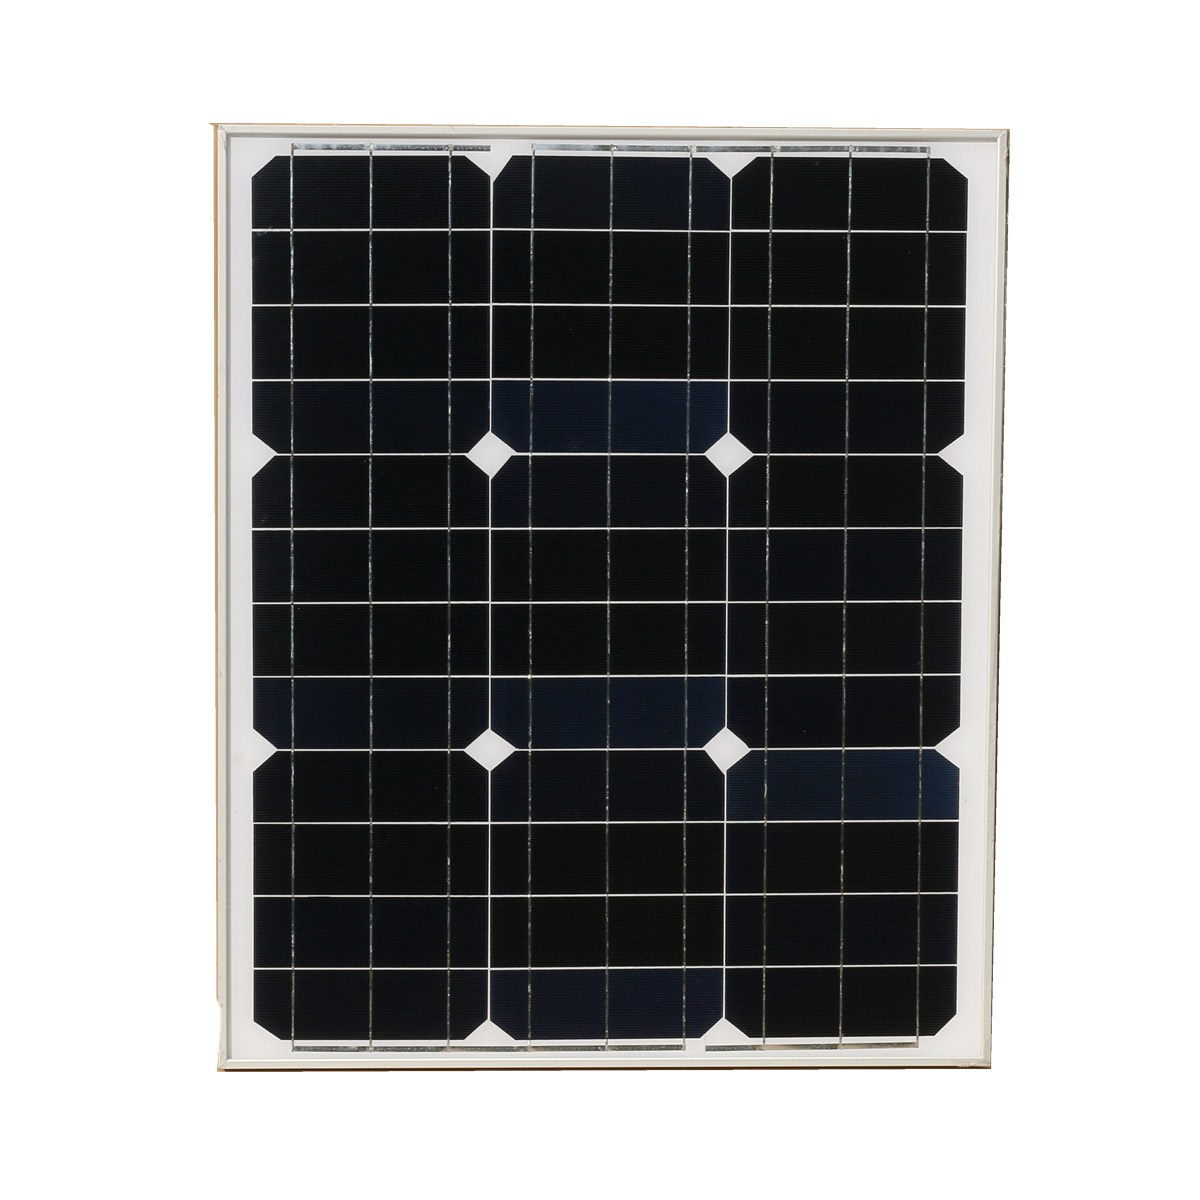 KINCO Steady 40w 18v Monocrystalline Silicon Solar Panels High Conversion Efficiency DIY Solar Power System For Car Battery sp 36 120w 12v semi flexible monocrystalline solar panel waterproof high conversion efficiency for rv boat car 1 5m cable